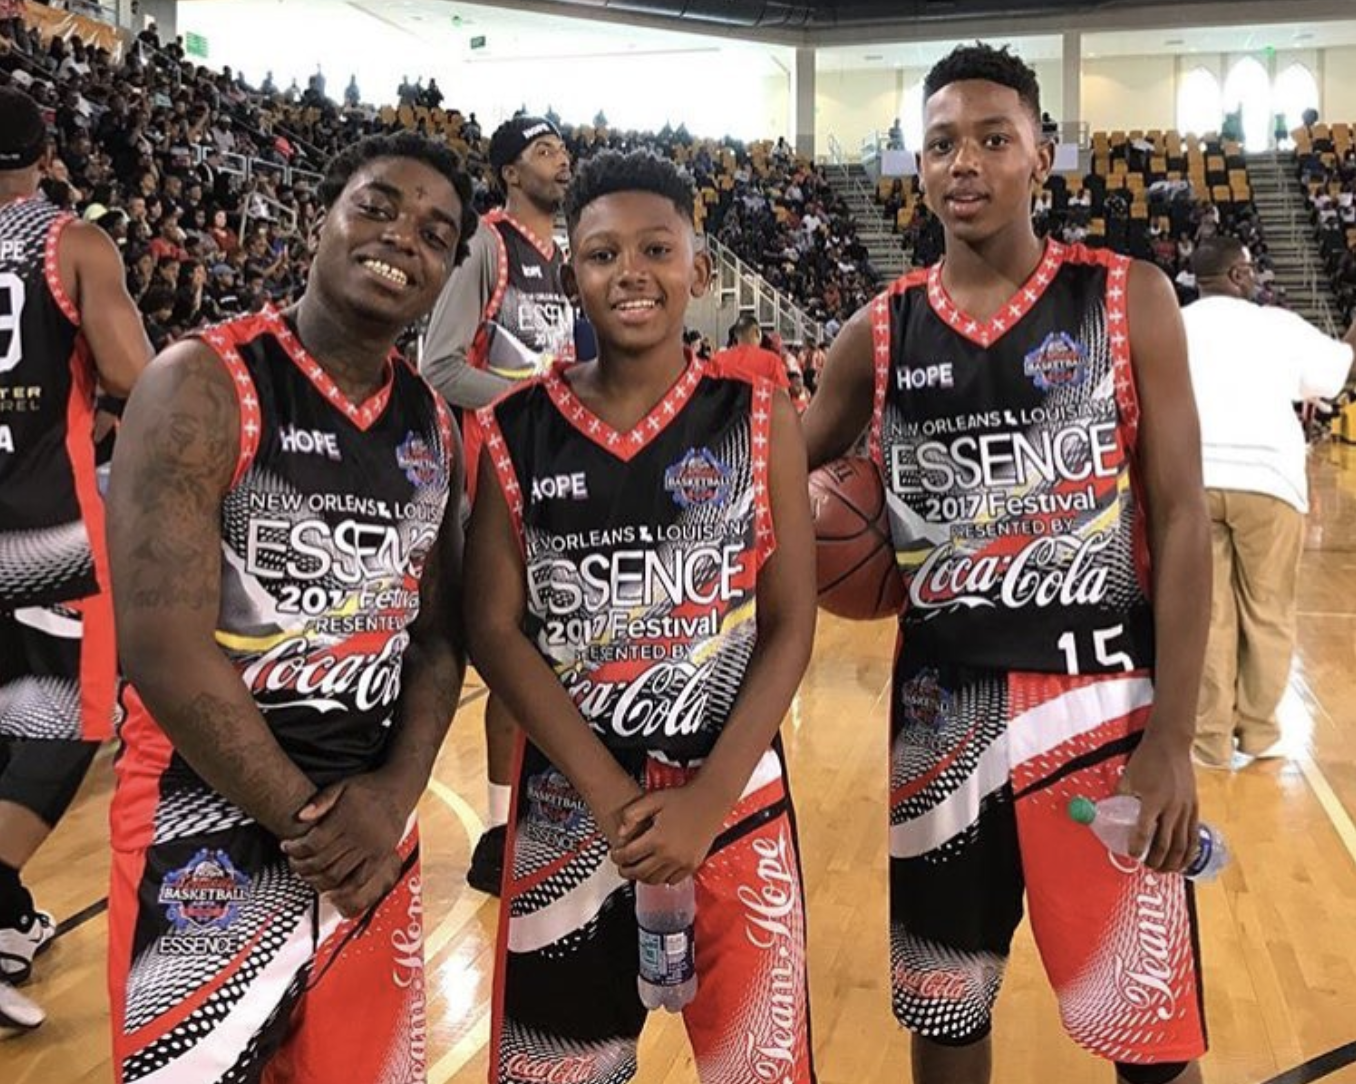 Last June, Wooter Apparel outfitted Master P's NOLA Celebrity Basketball Game at the 2017 Essence Festival with full sublimation printed uniforms.